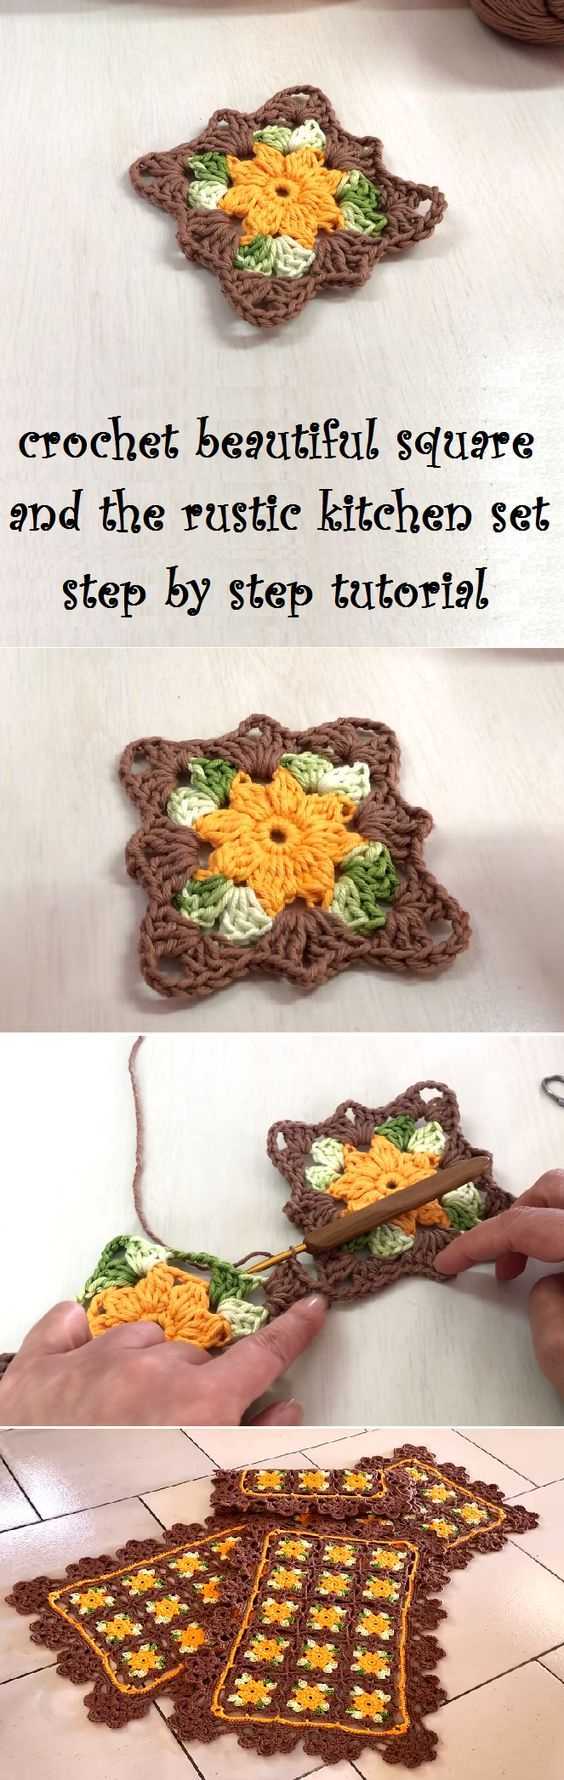 Crochet Beautiful Square and the Rustic Kitchen set using the square ...